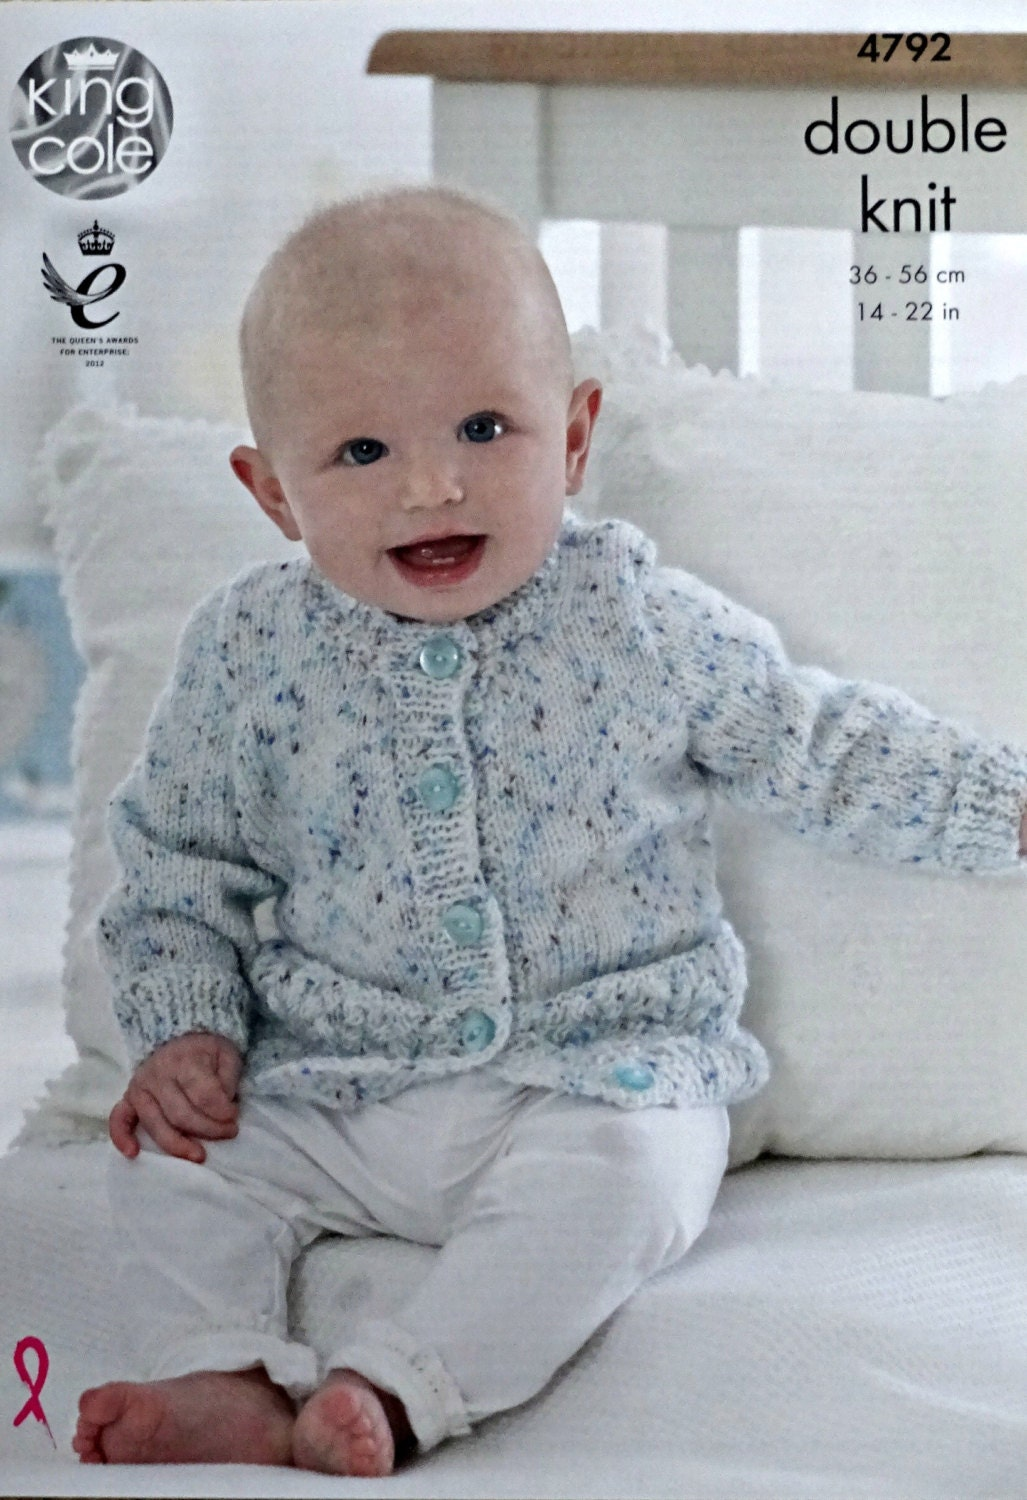 Baby Knitting Pattern K4792 Babys Cable Hem Jumpers and ...